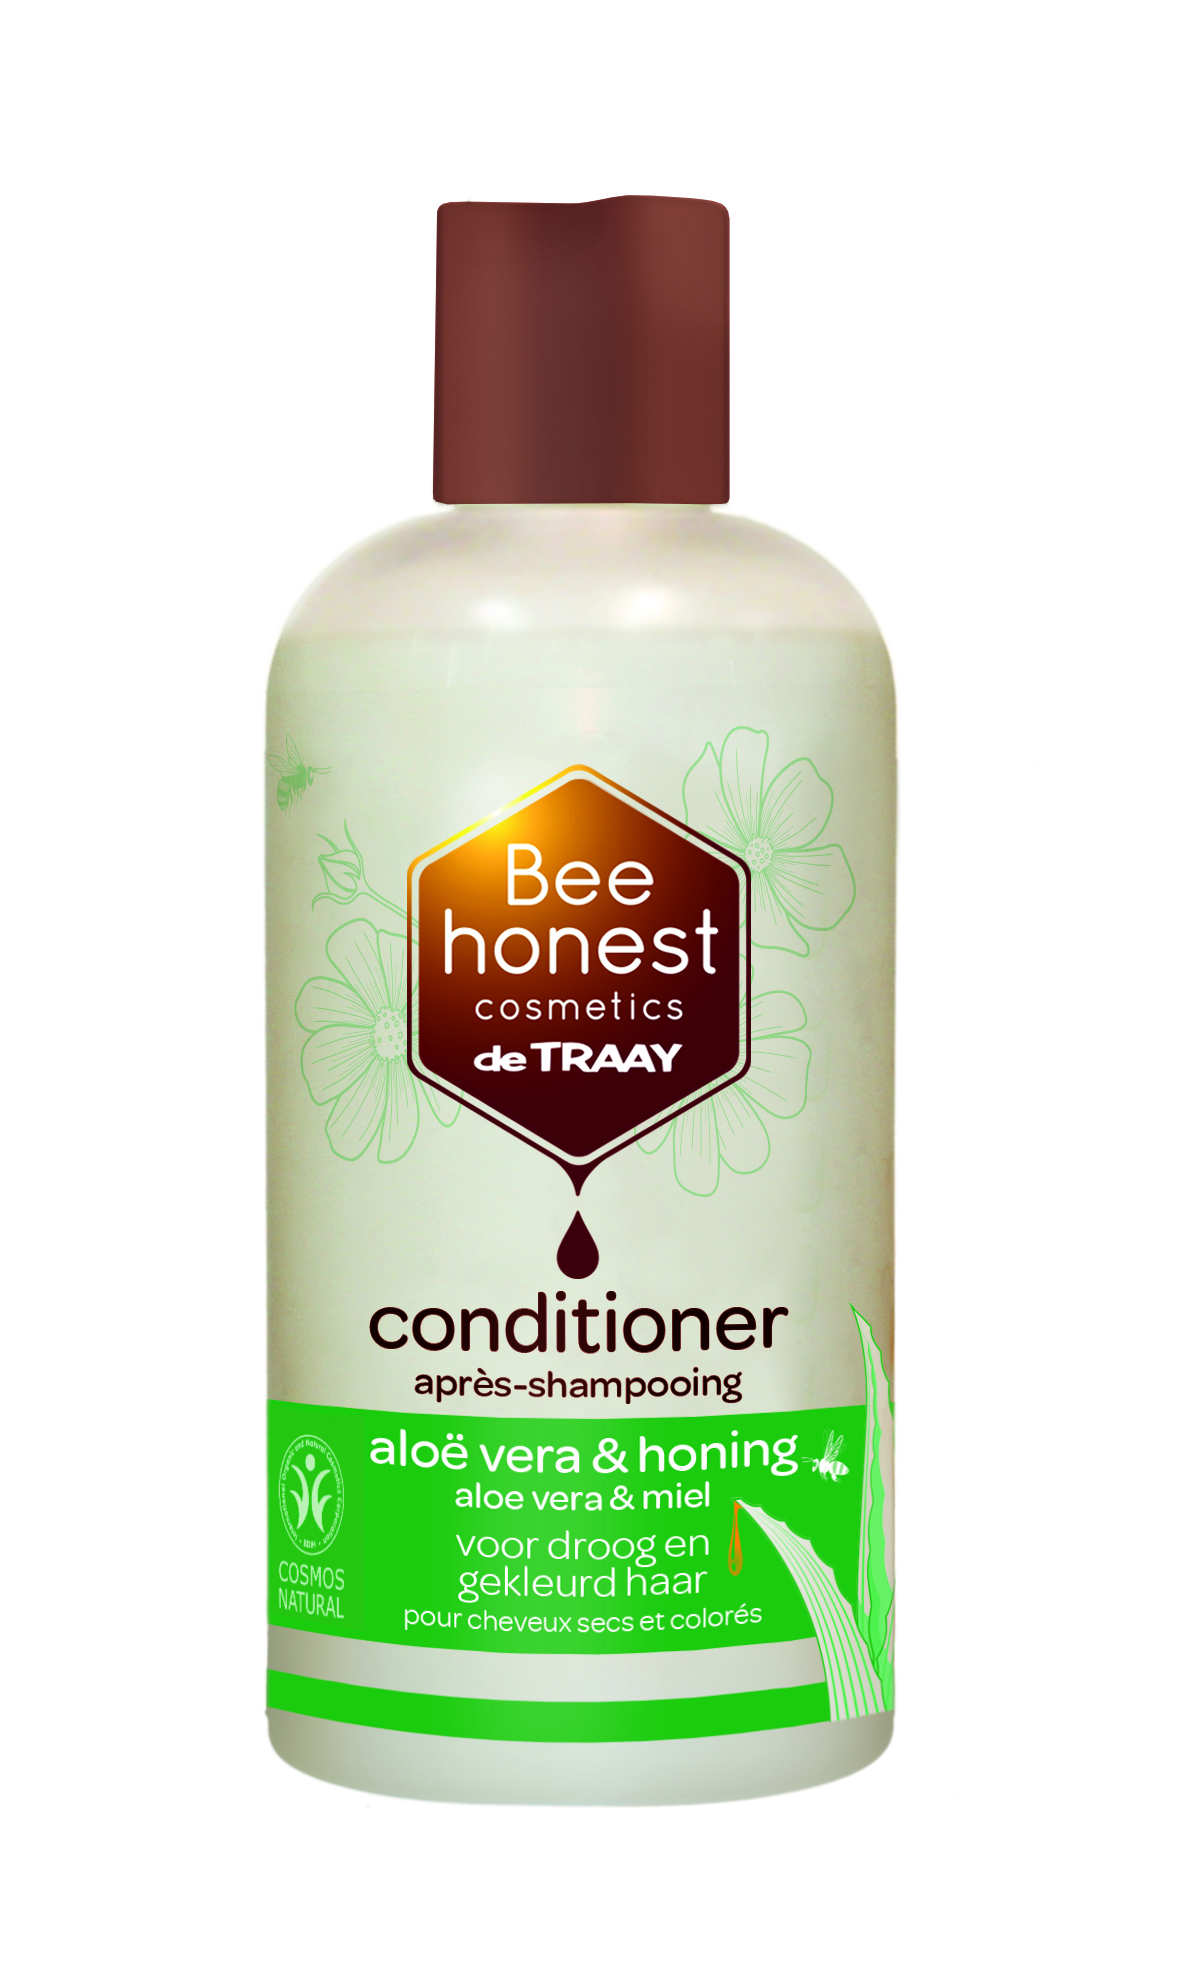 Conditioner aloe vera & honey